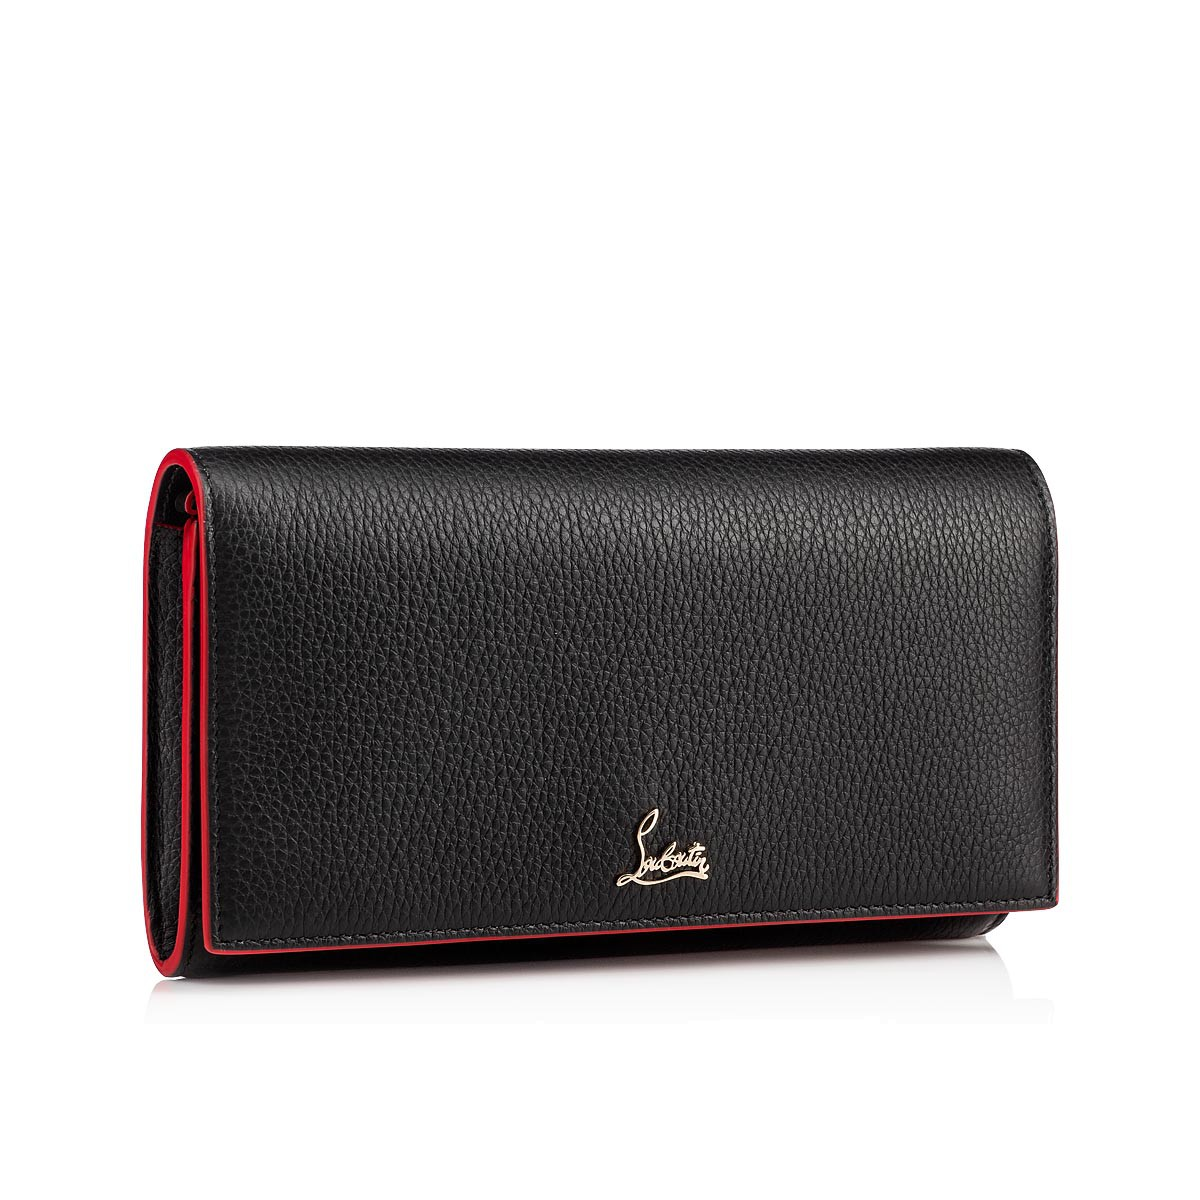 Accessories - Boudoir Chain Wallet - Christian Louboutin